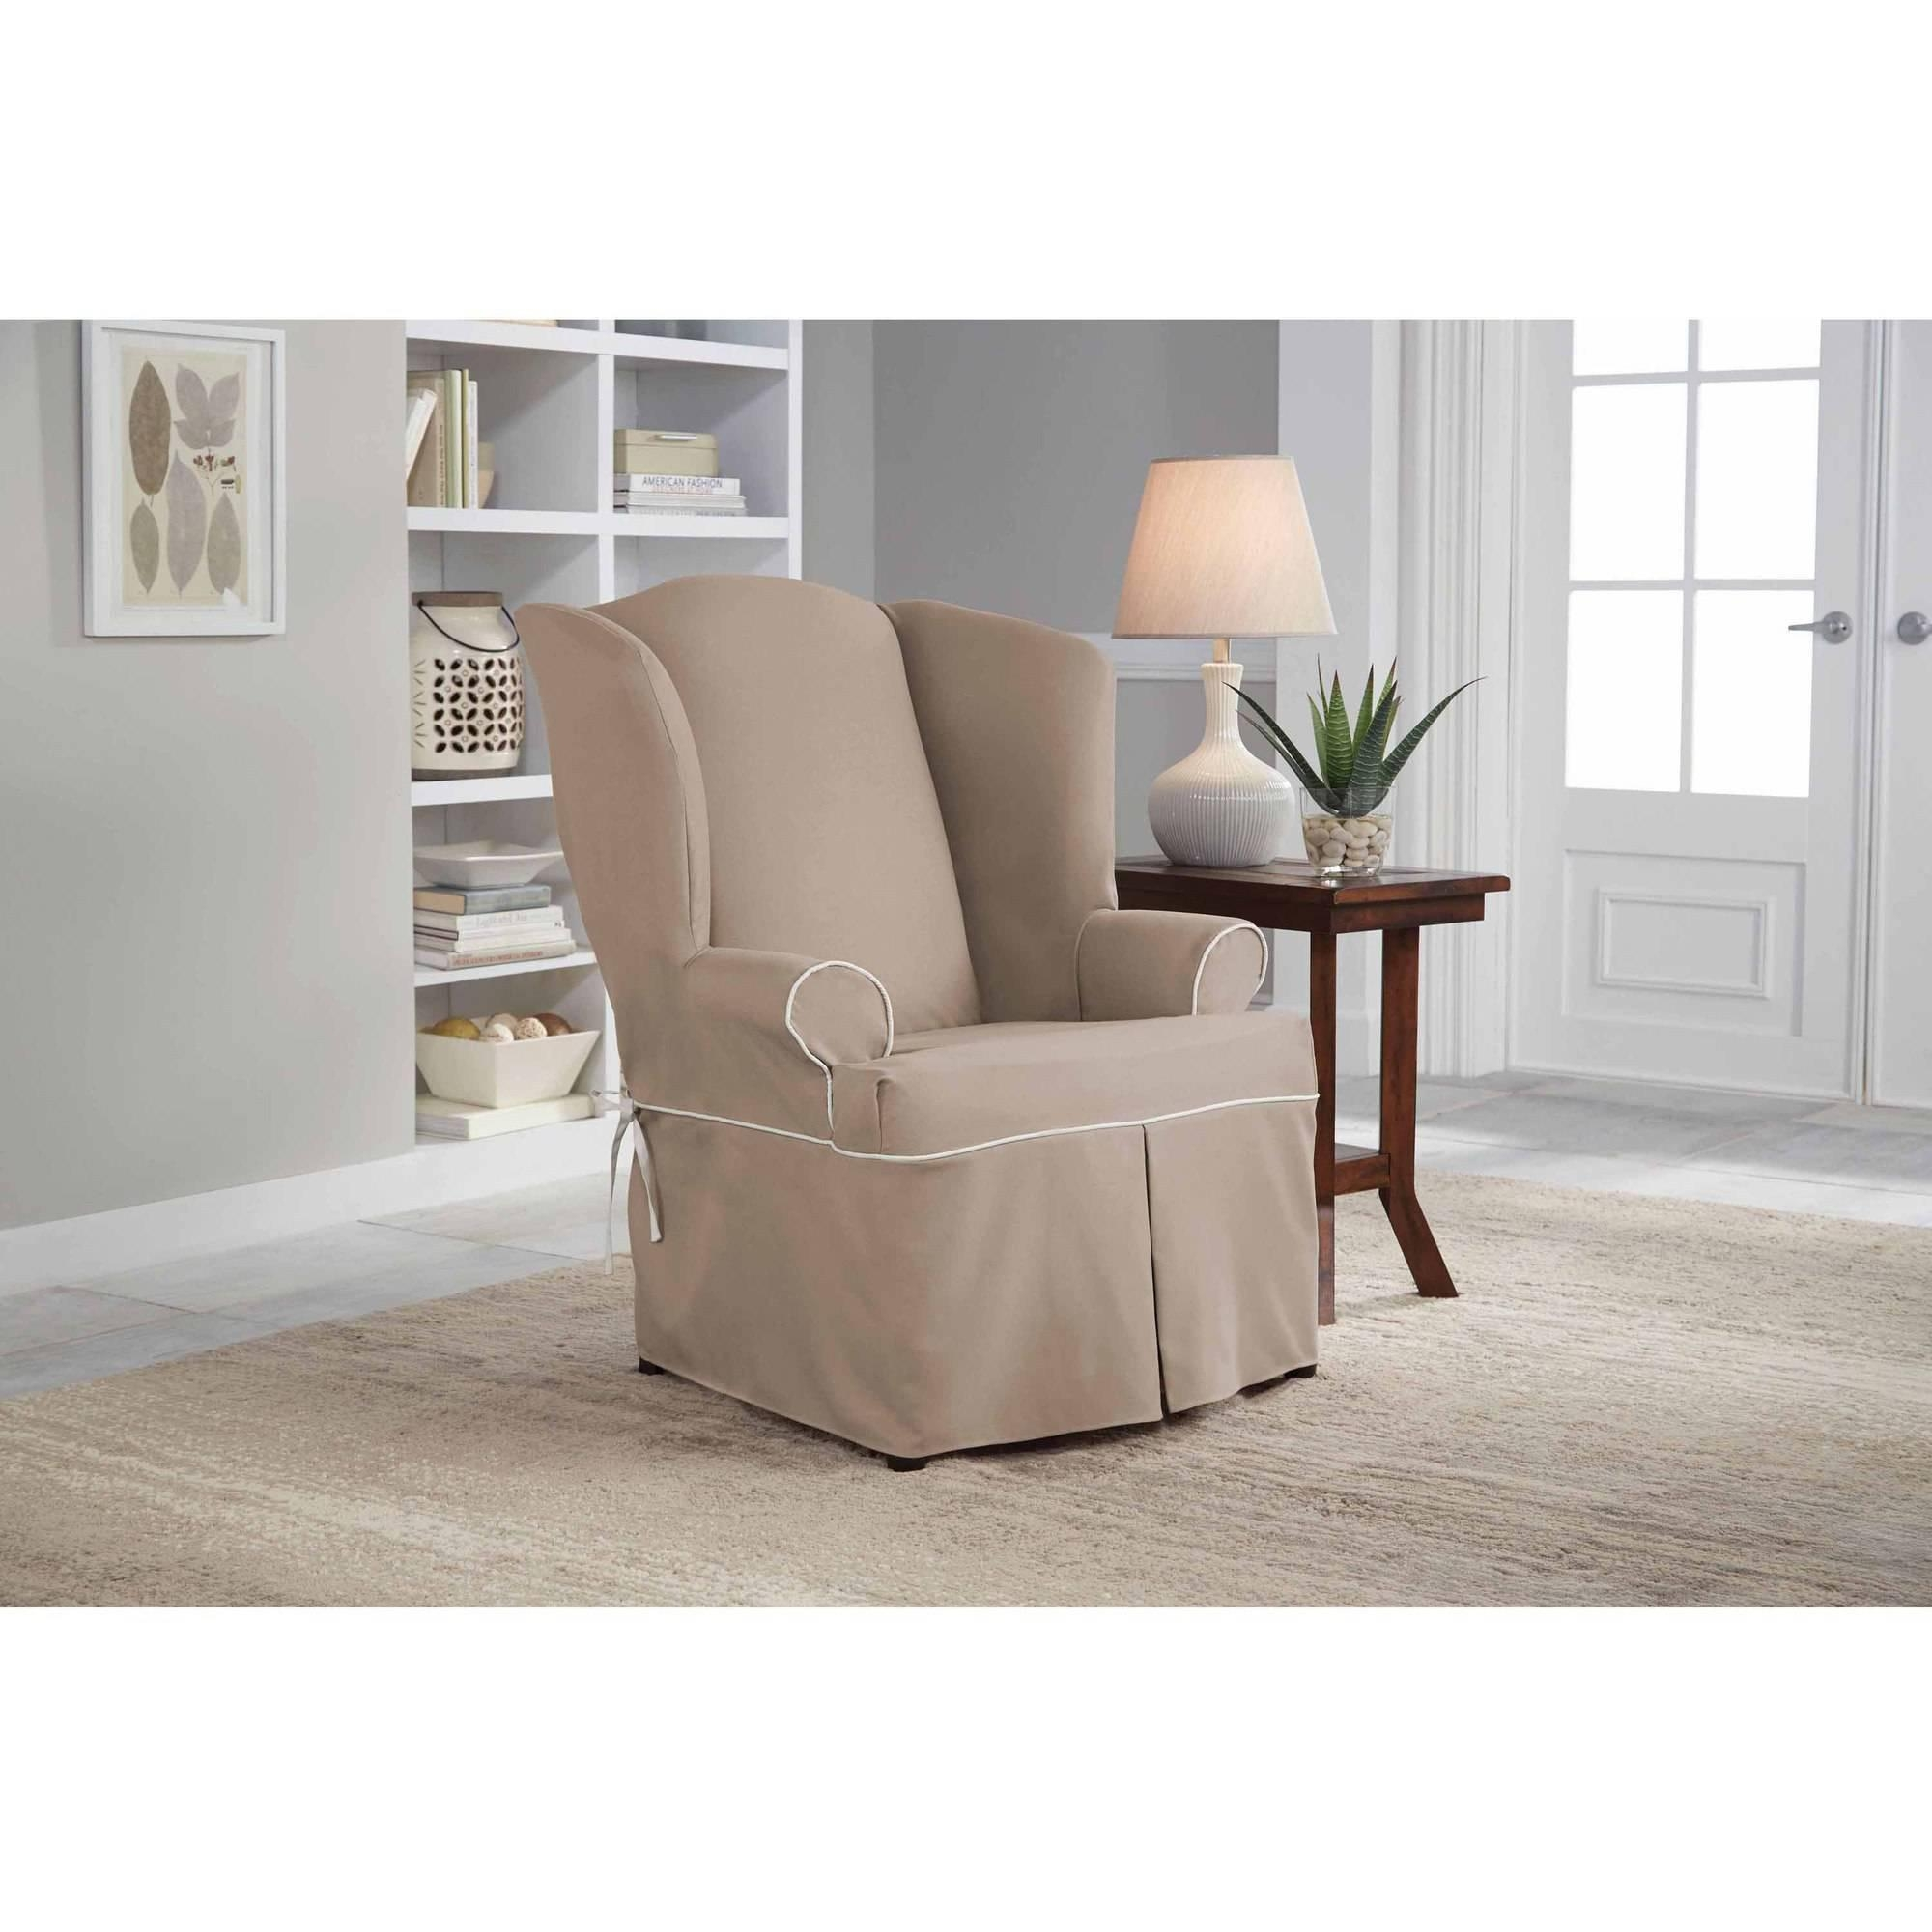 Decor: Stylish T Cushion Sofa Slipcover For Living Room Decoration With Regard To Loveseat Slipcovers T Cushion (View 17 of 20)